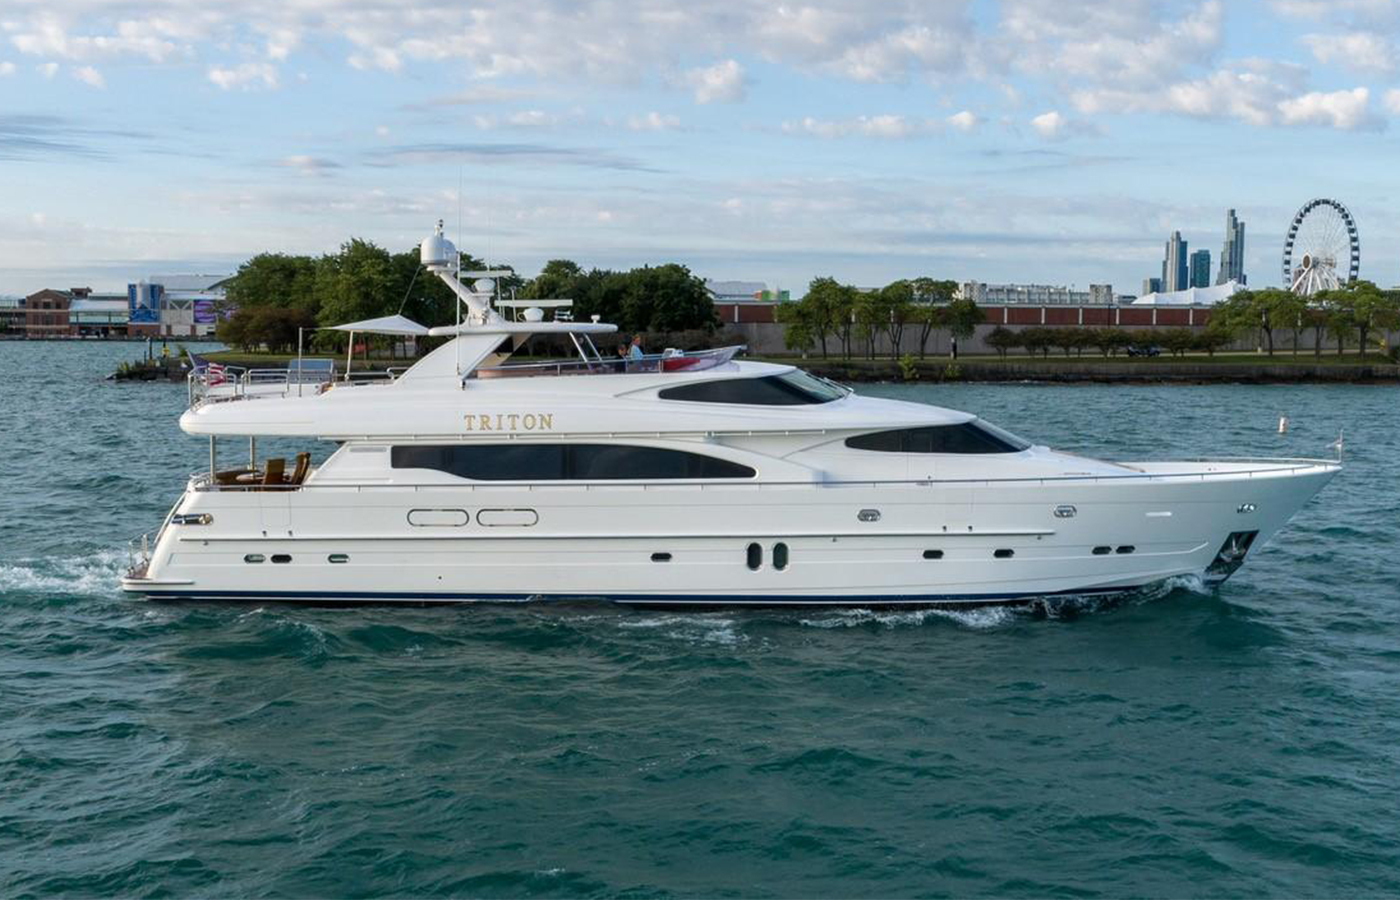 Horizon 95 Motor Yacht Highlight [Boat Review + Video]